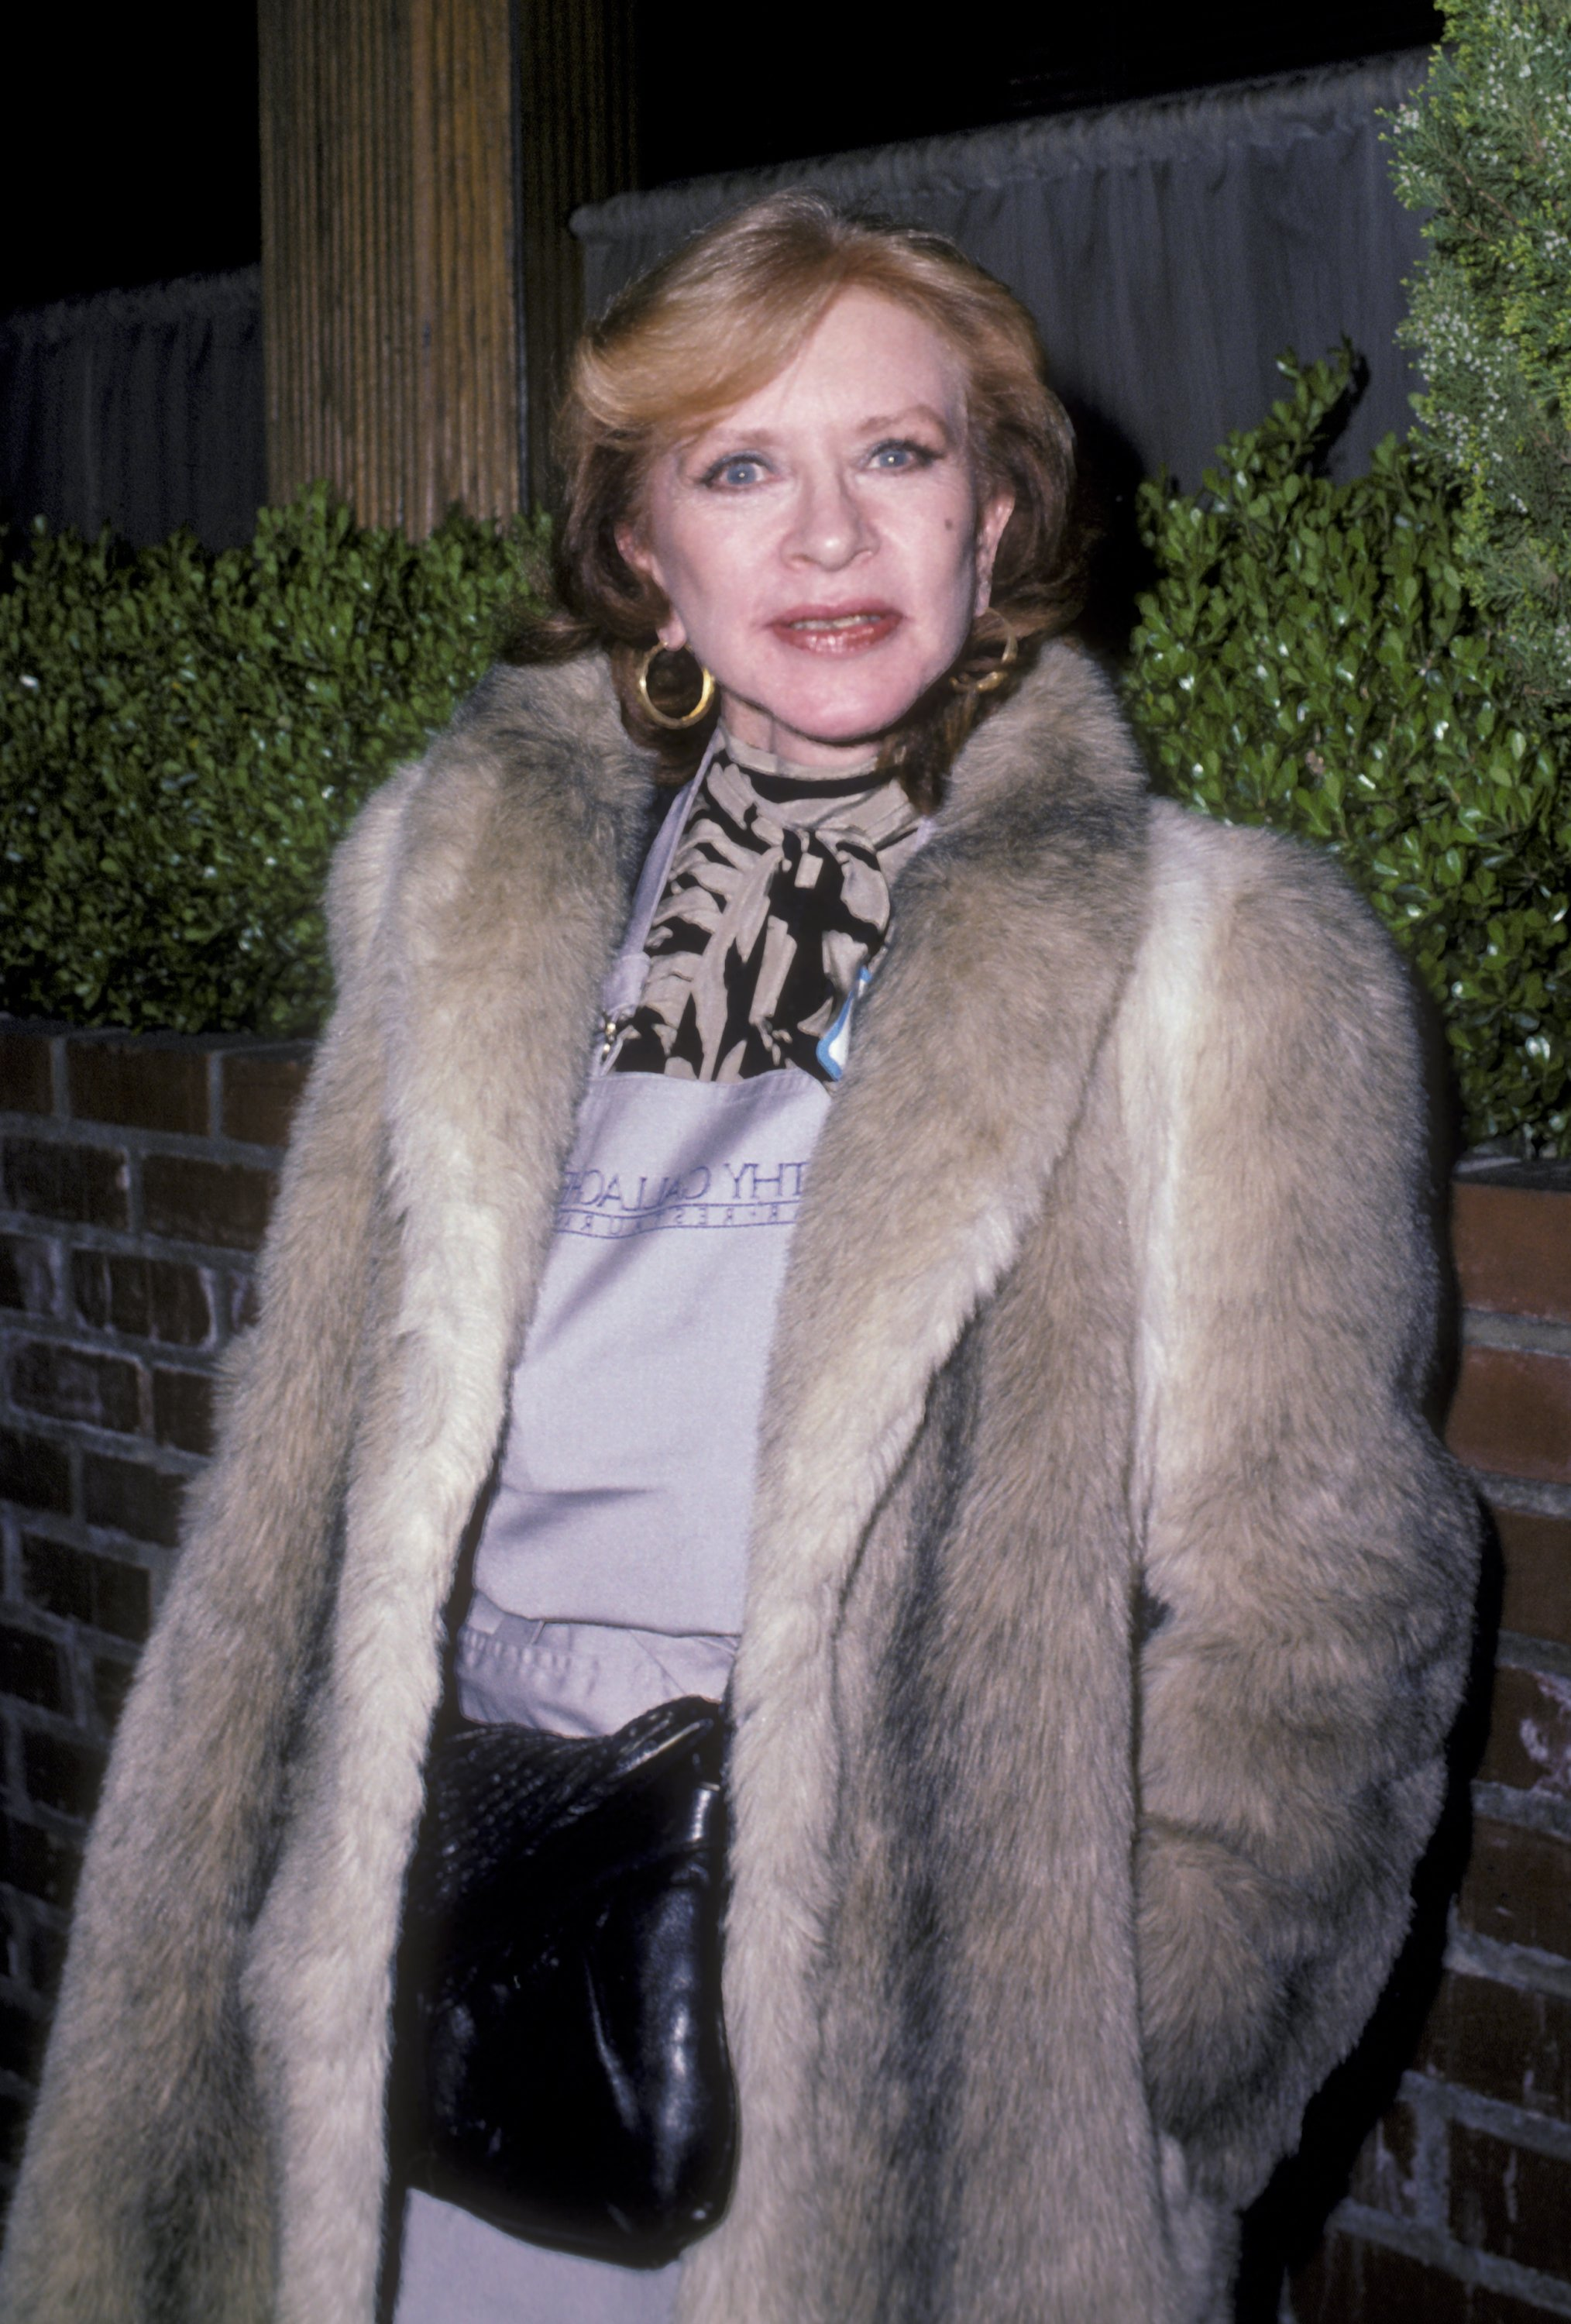 Amanda Blake attends Life Organization Benefit Fundraiser on February 11, 1986 at Gallagher's Restaurant in Los Angeles, California.| Source: Getty Images